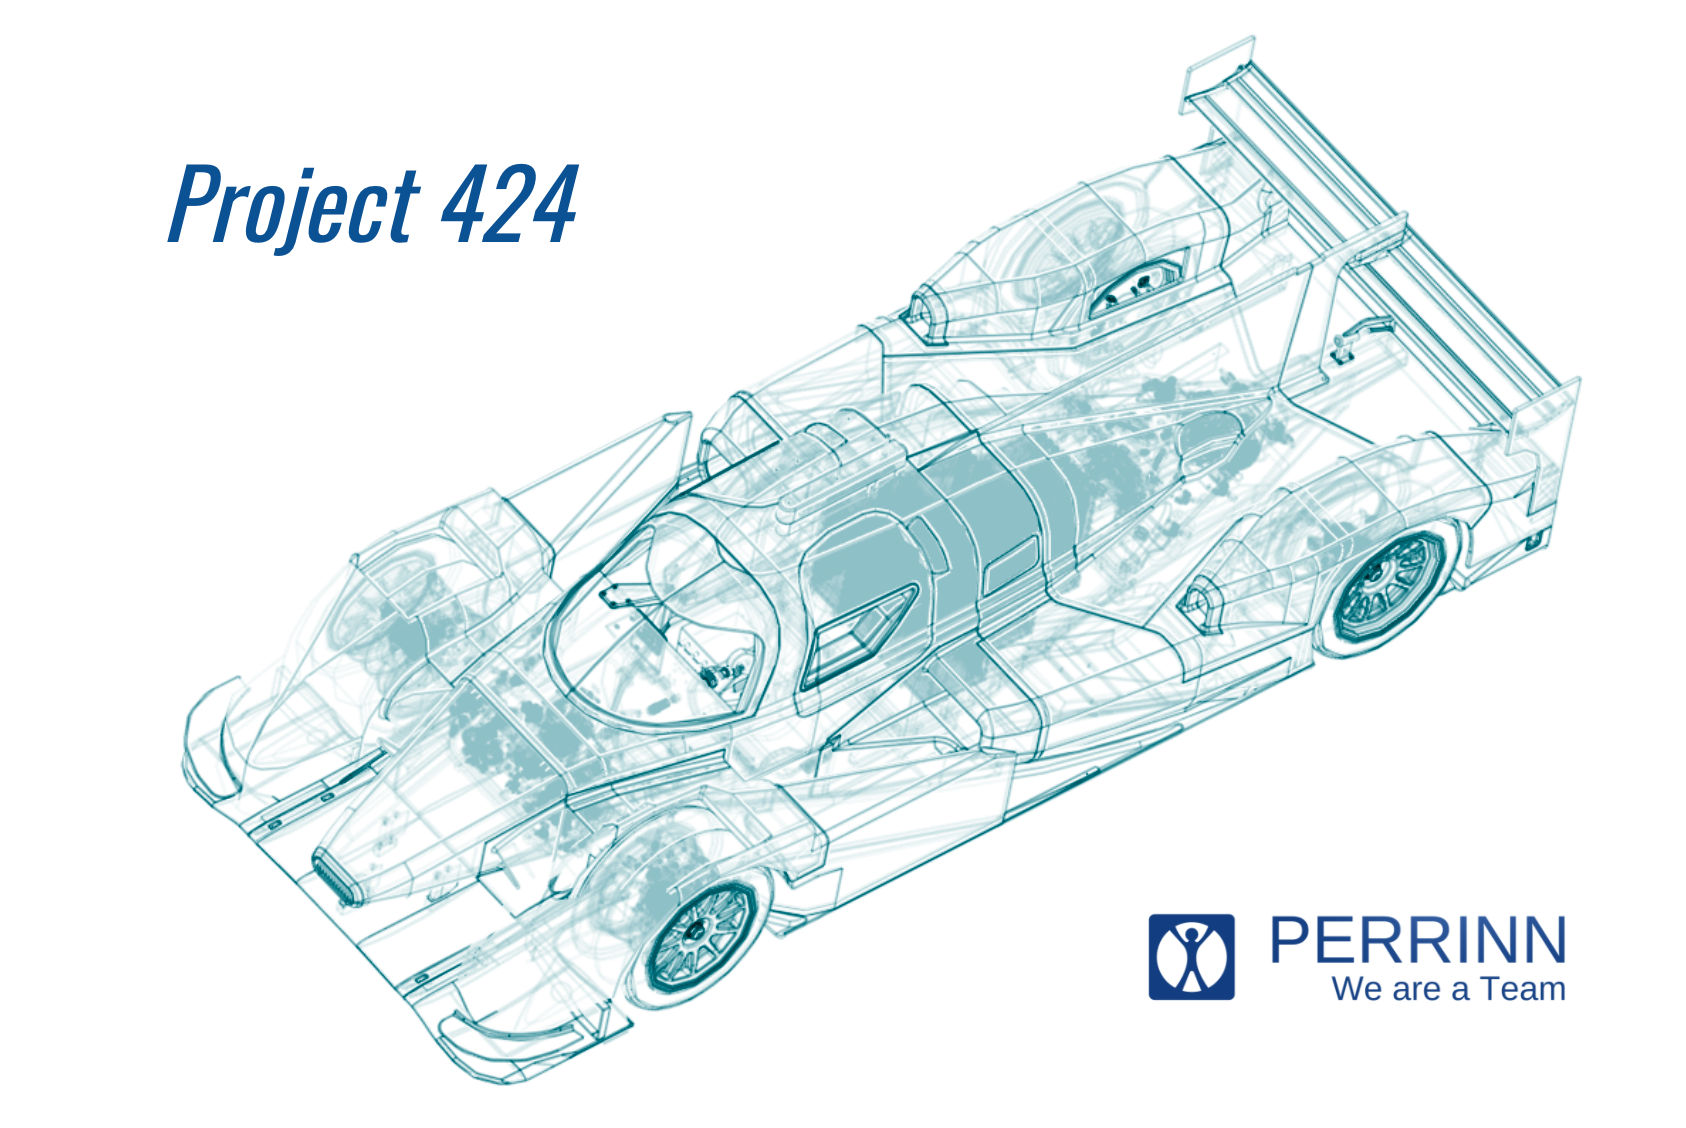 Perrinn 424 electric car is ready to be built.